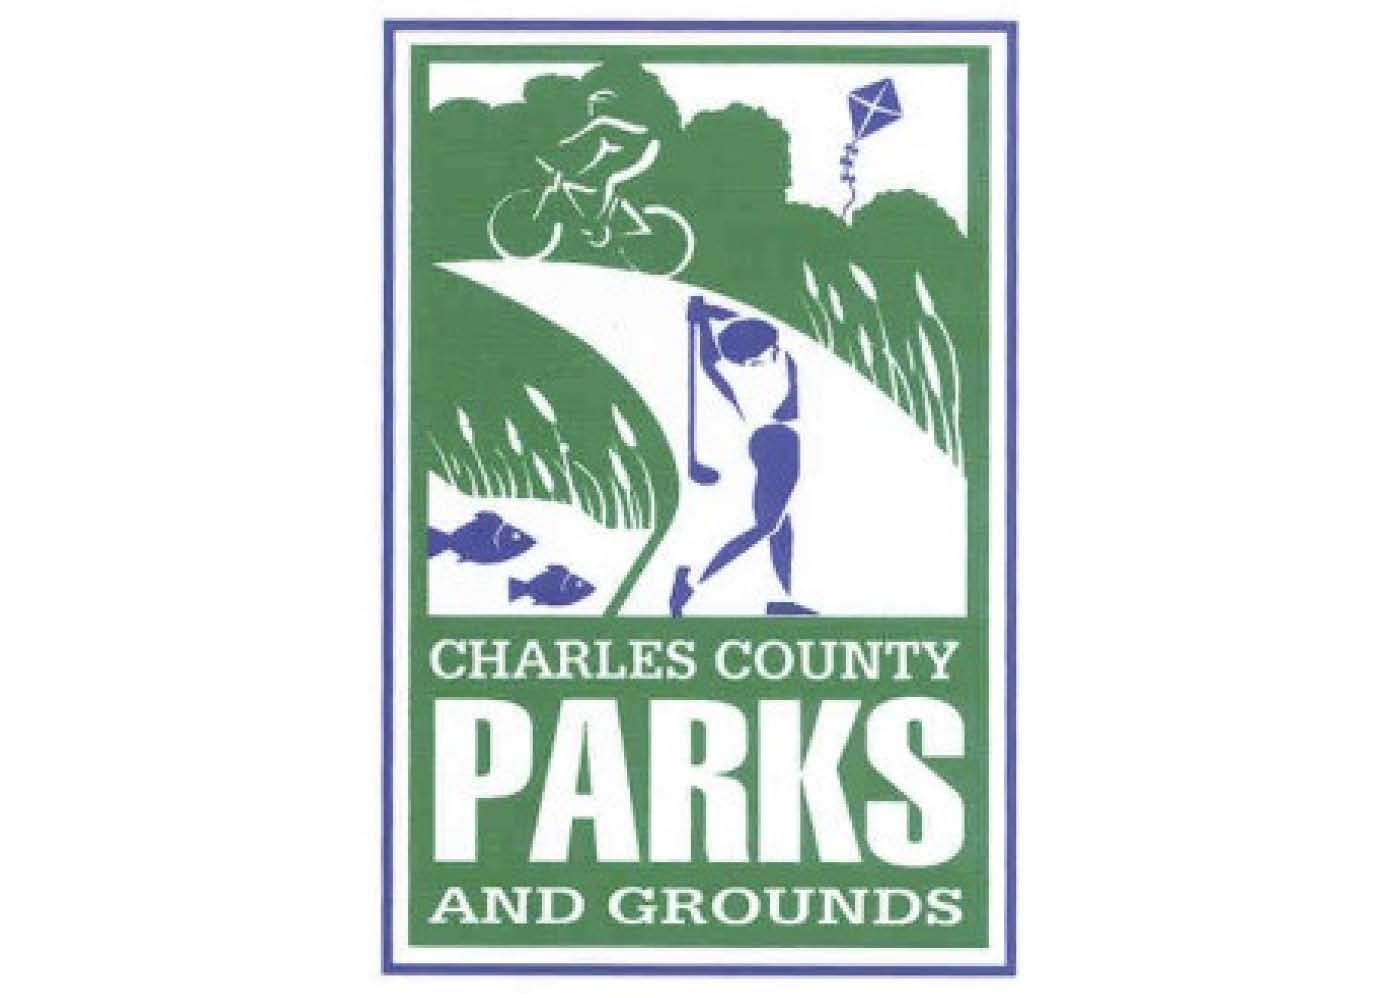 Charles County Parks and Grounds